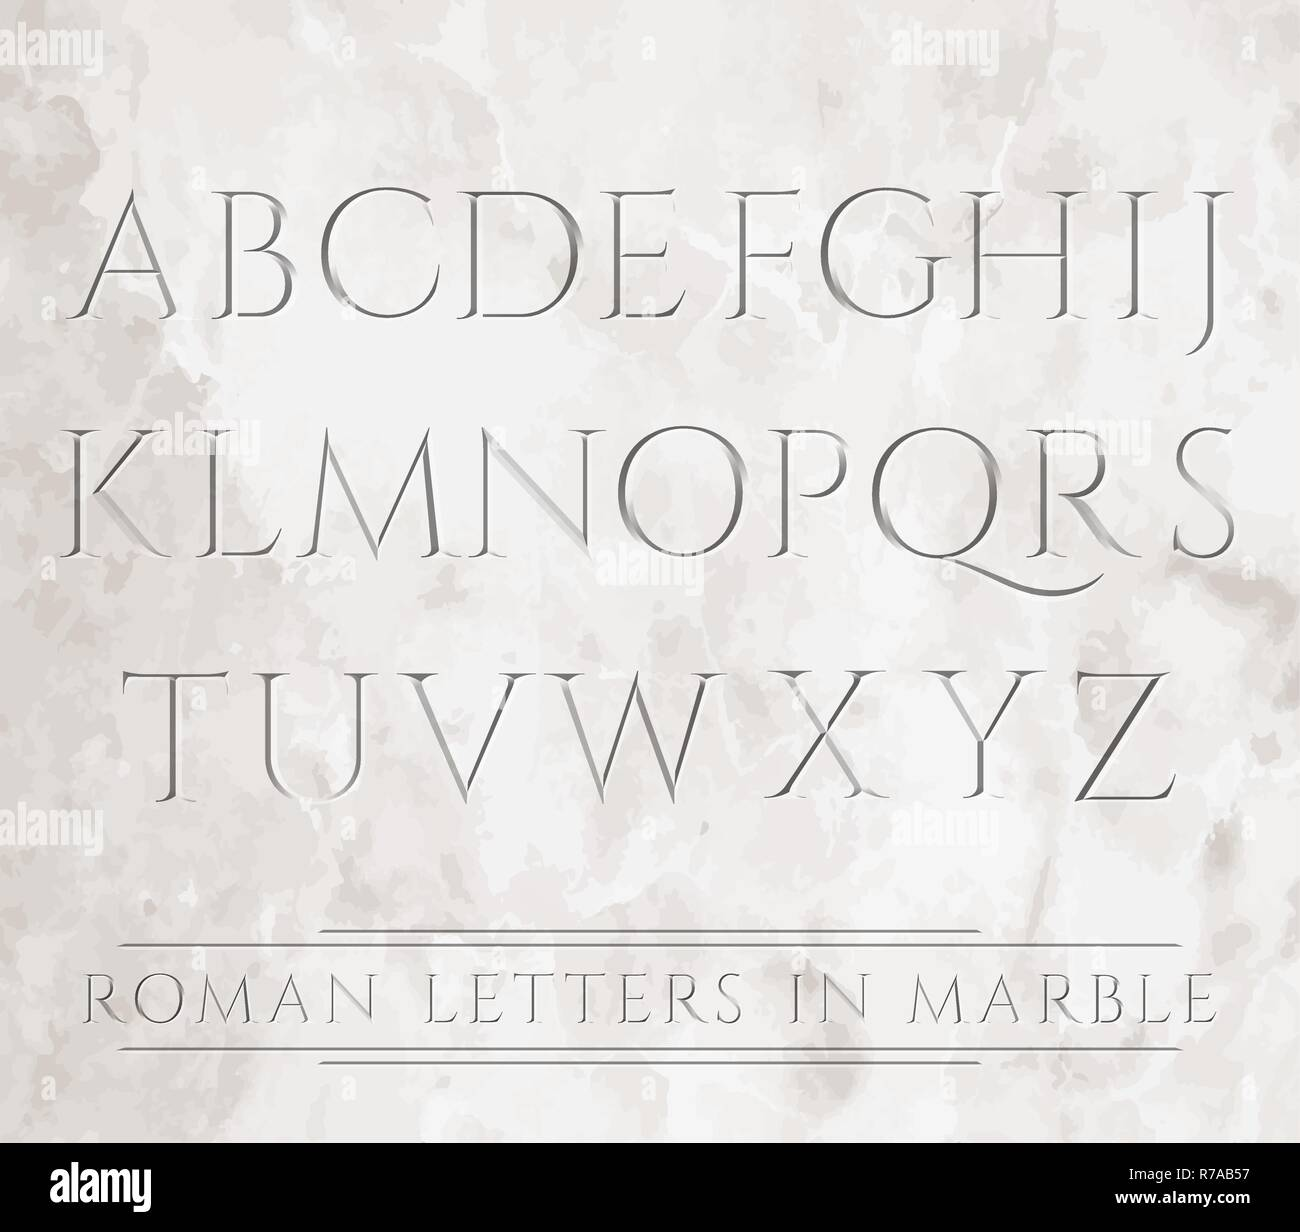 Ancient Roman letters chiseled in marble. Can be placed over different backgrounds. - Stock Vector